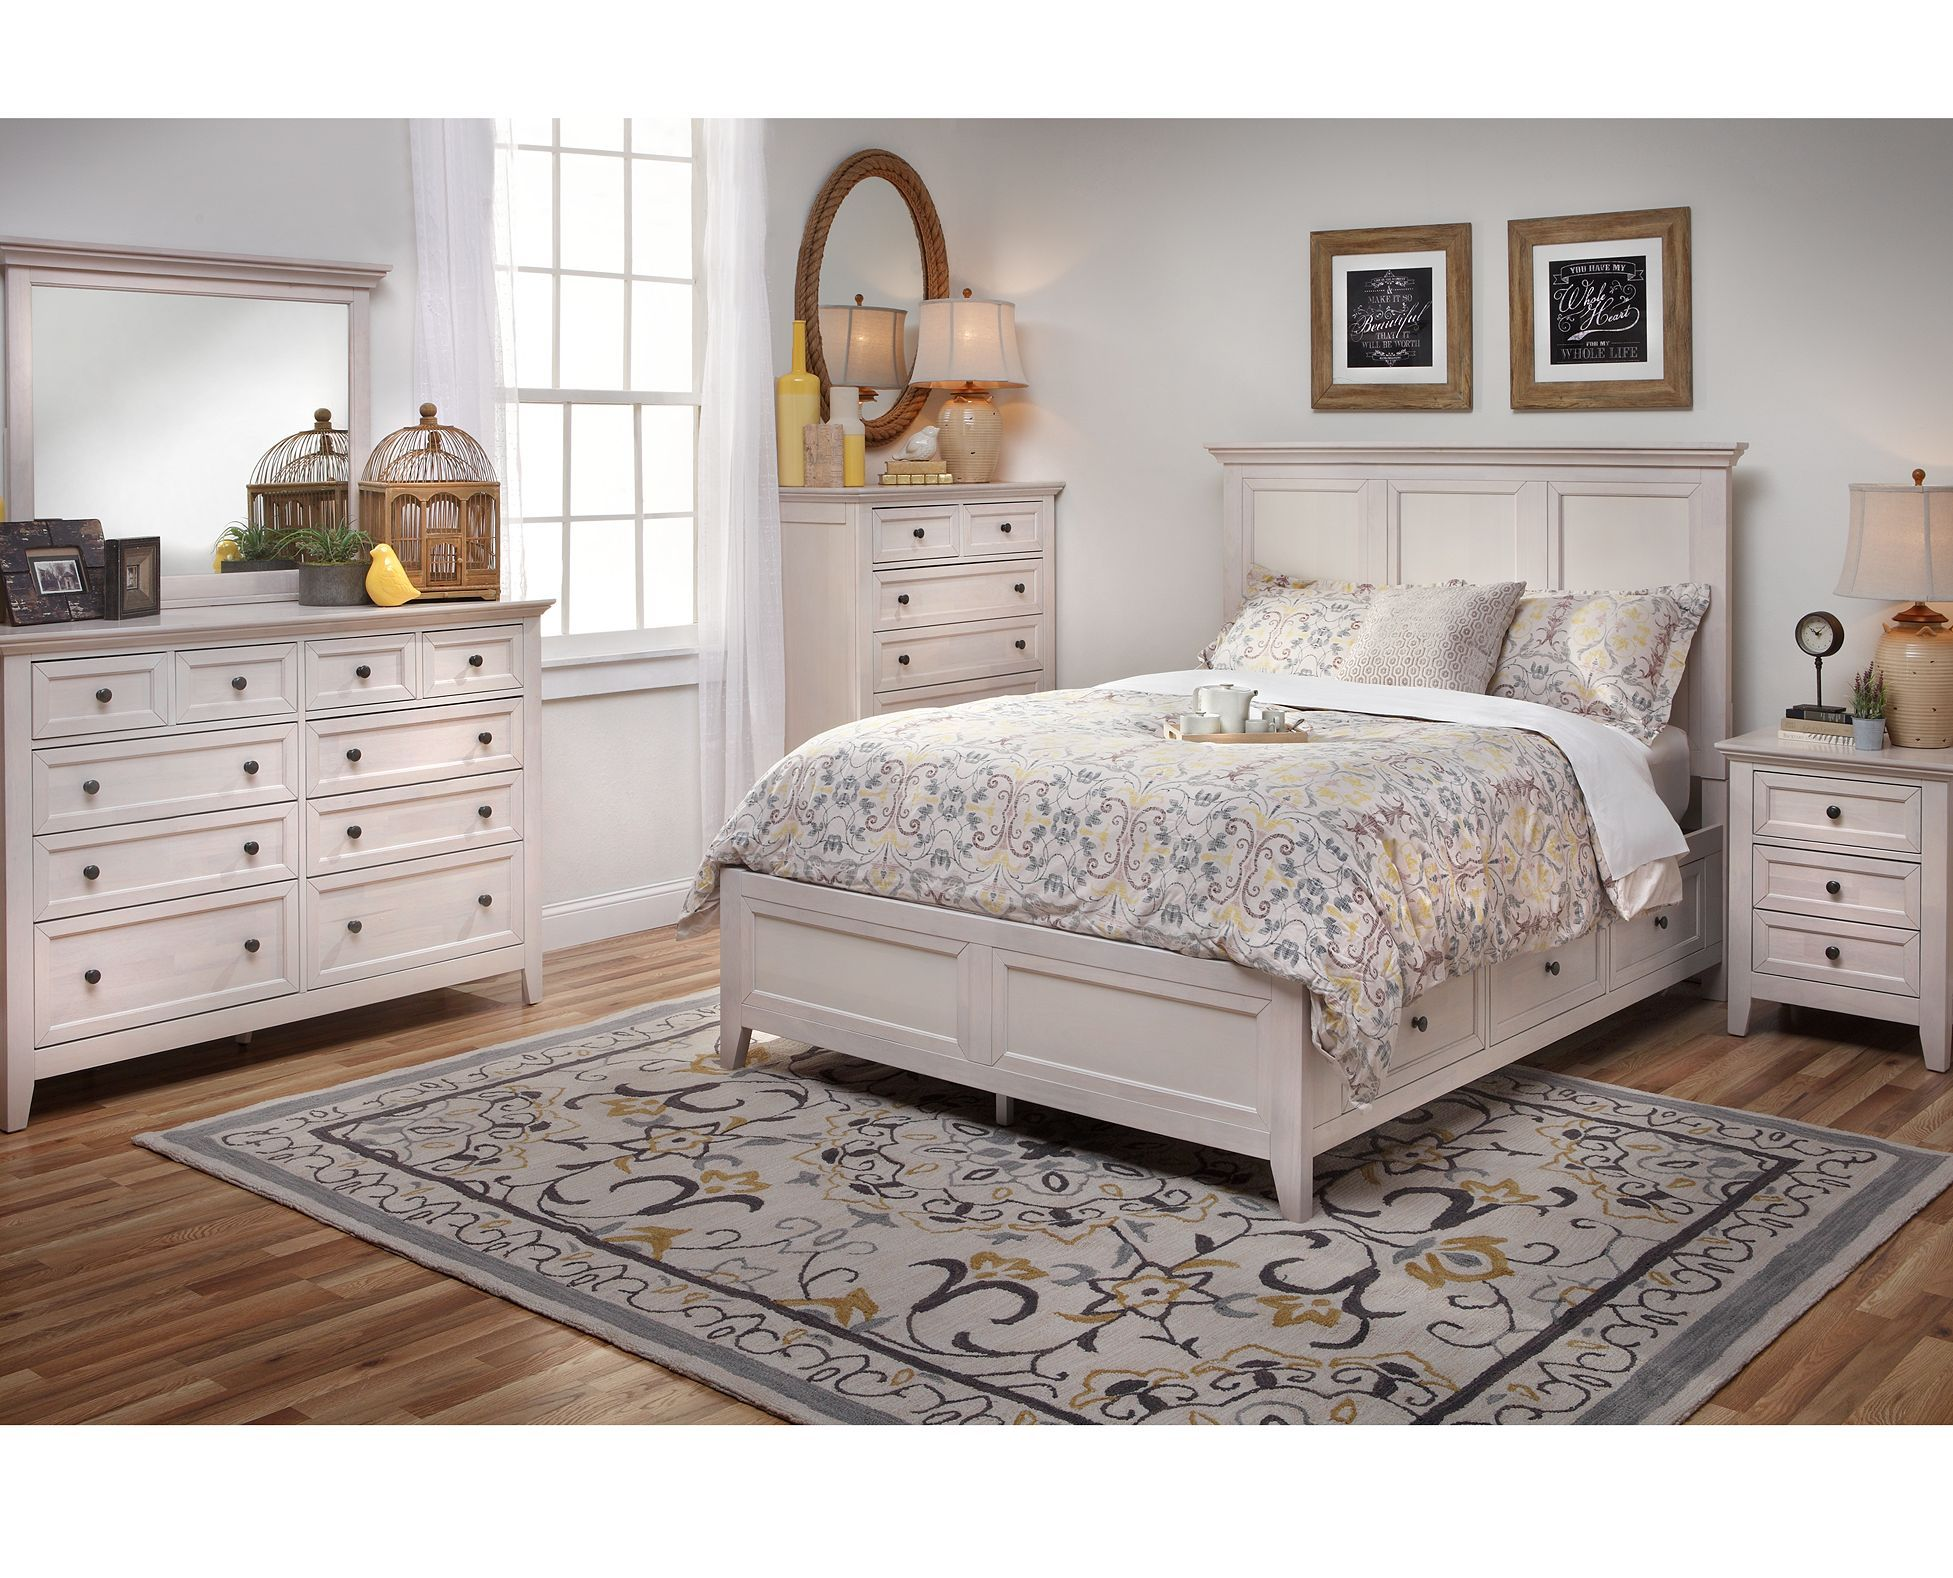 Bonn Storage Bedroom Set Bedroom Sets Oak Bedroom